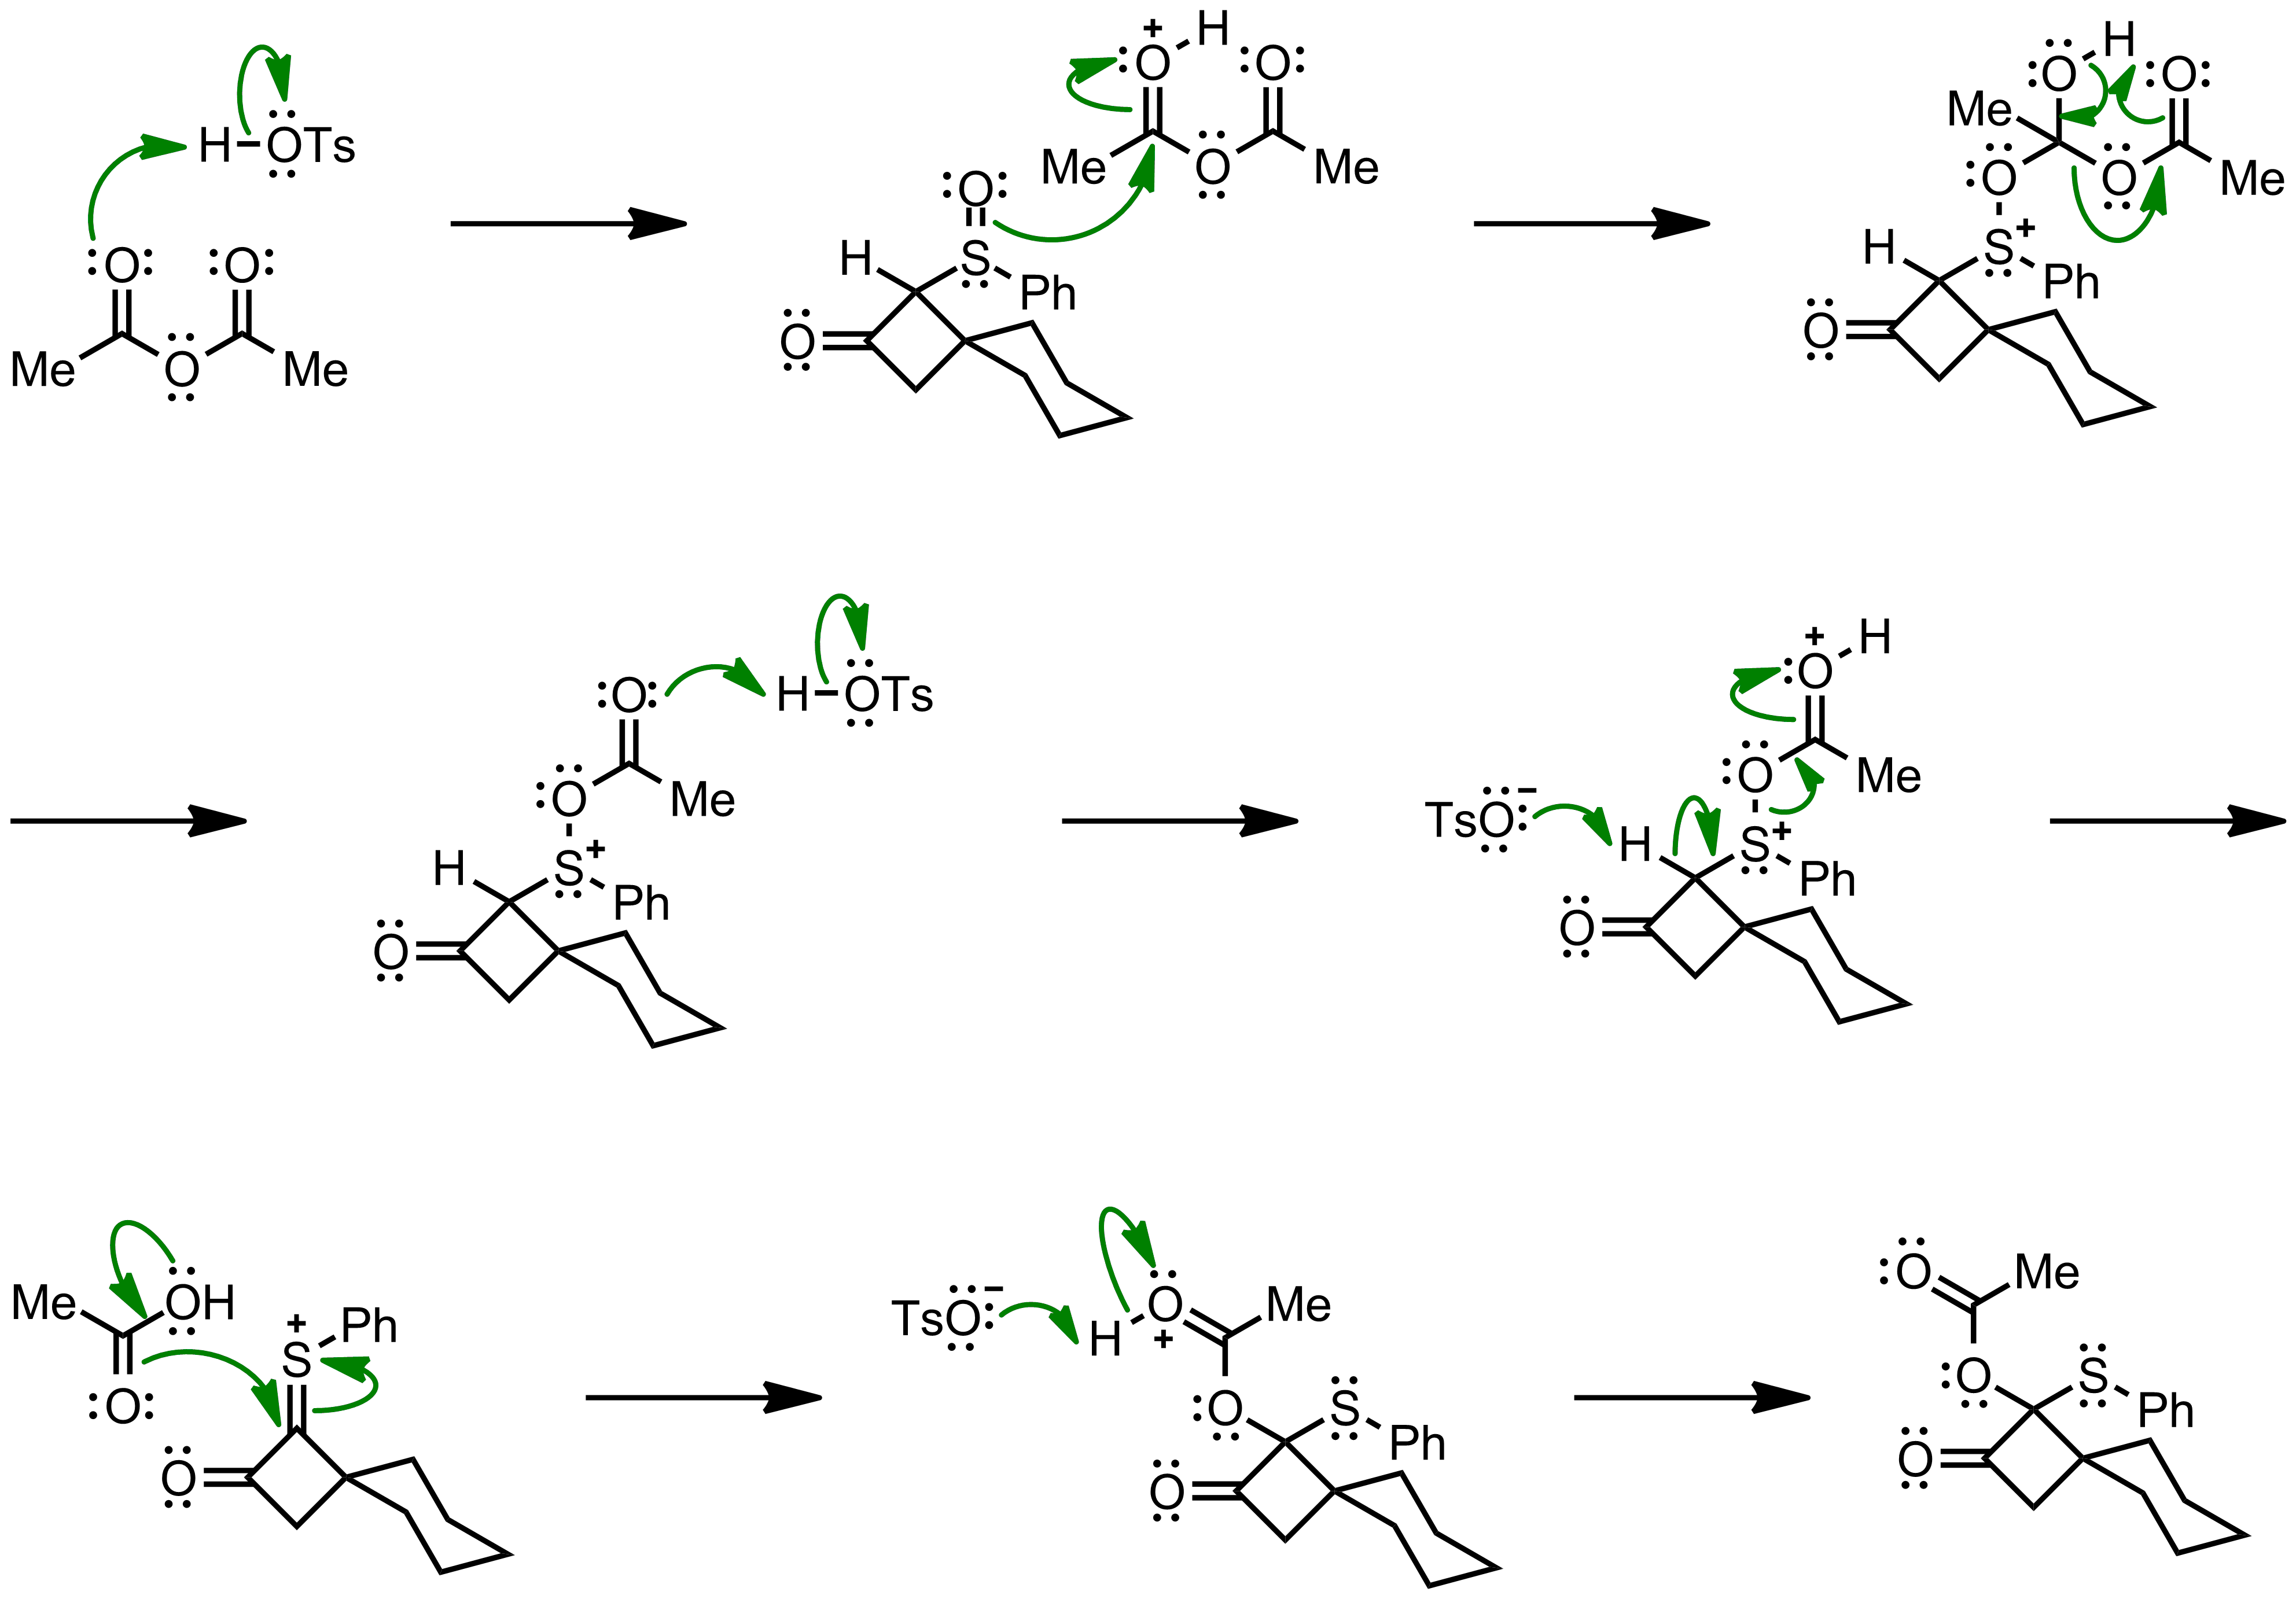 Mechanism of the Pummerer Rearrangement